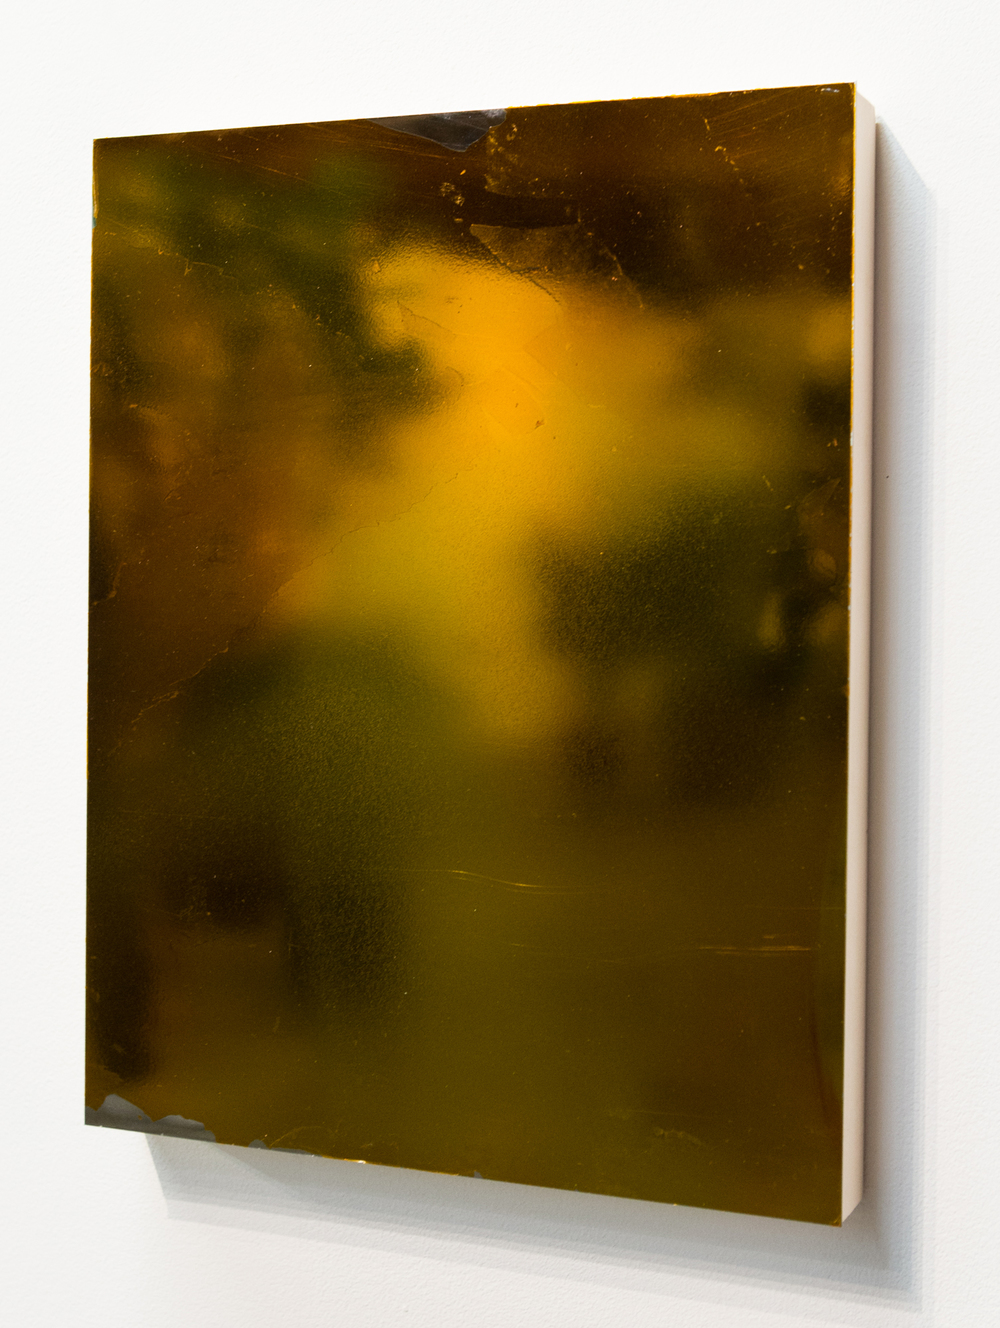 MLSL_18_Bunny, 2015  Gold tint on stainless steel  18 x 14 in (45.72 x 35.56 cm)